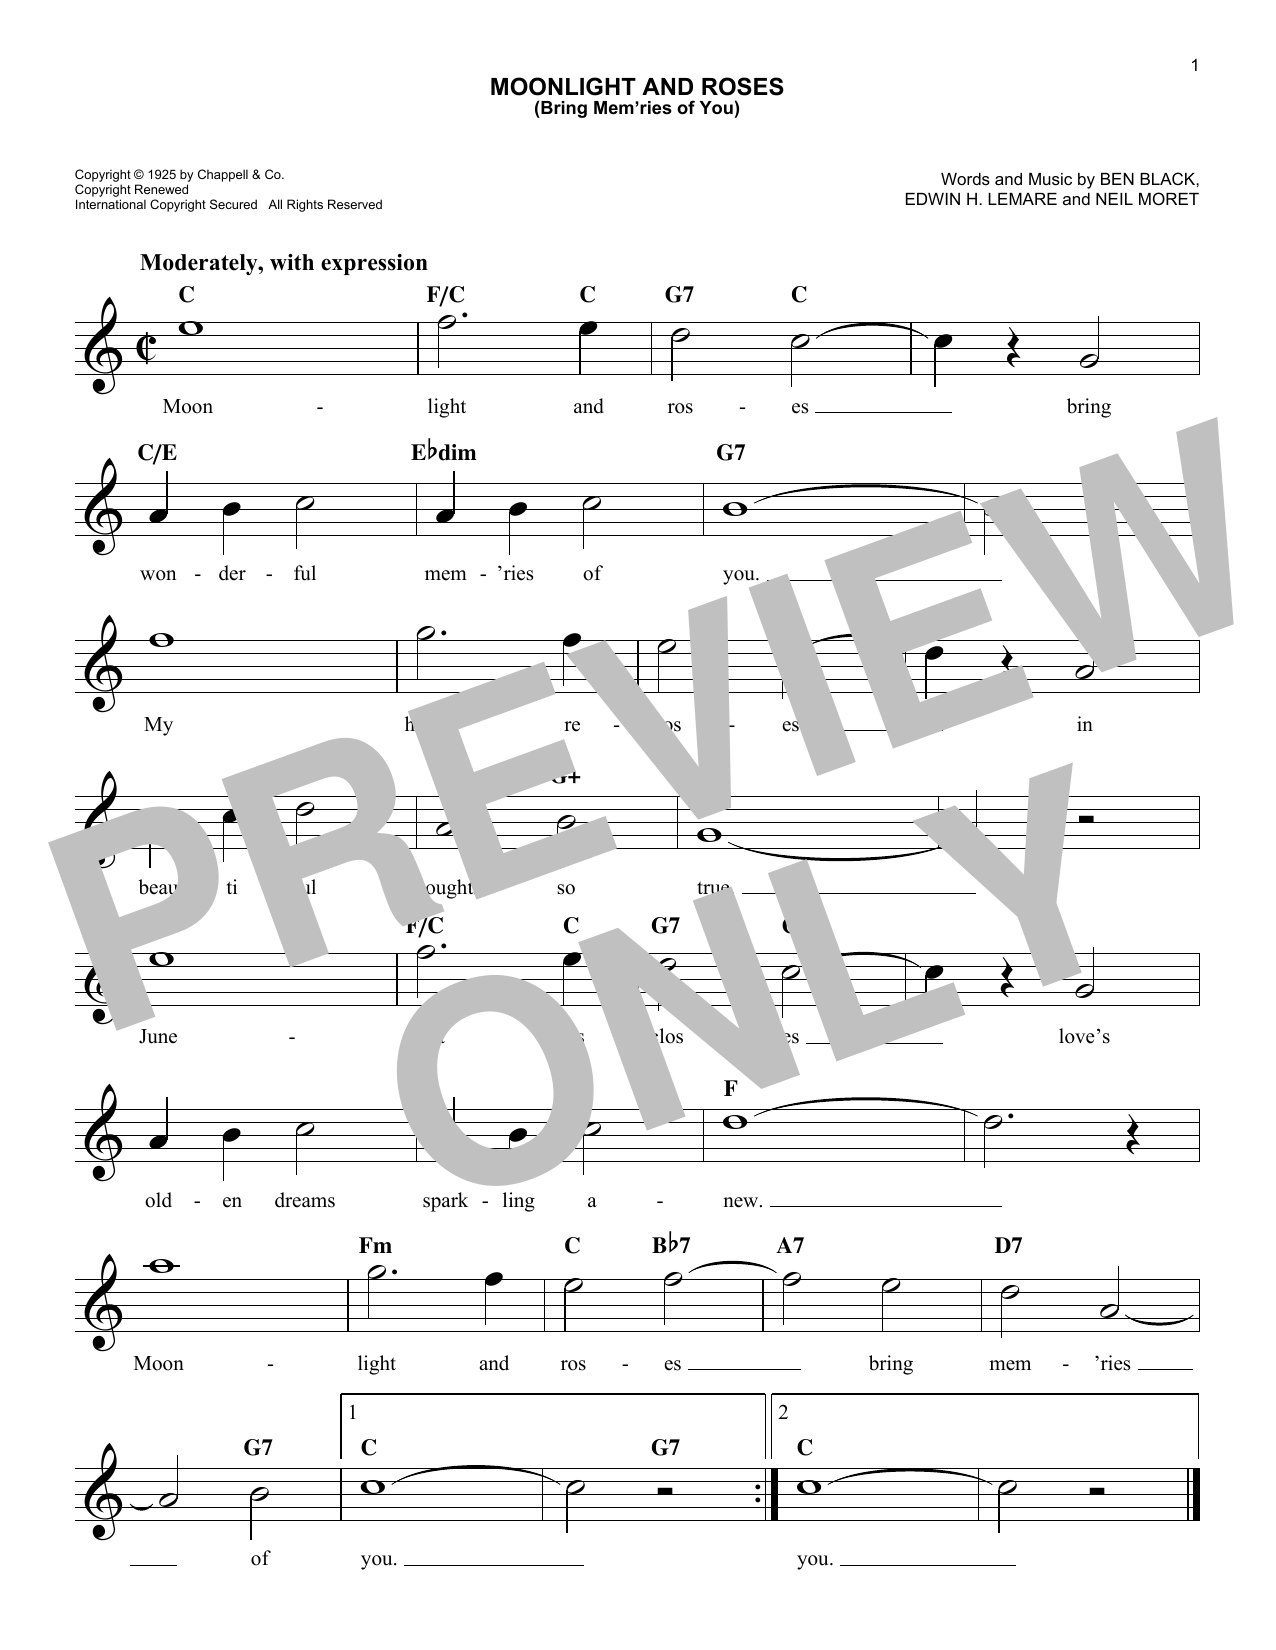 Moonlight And Roses (Bring Mem'ries Of You) Sheet Music